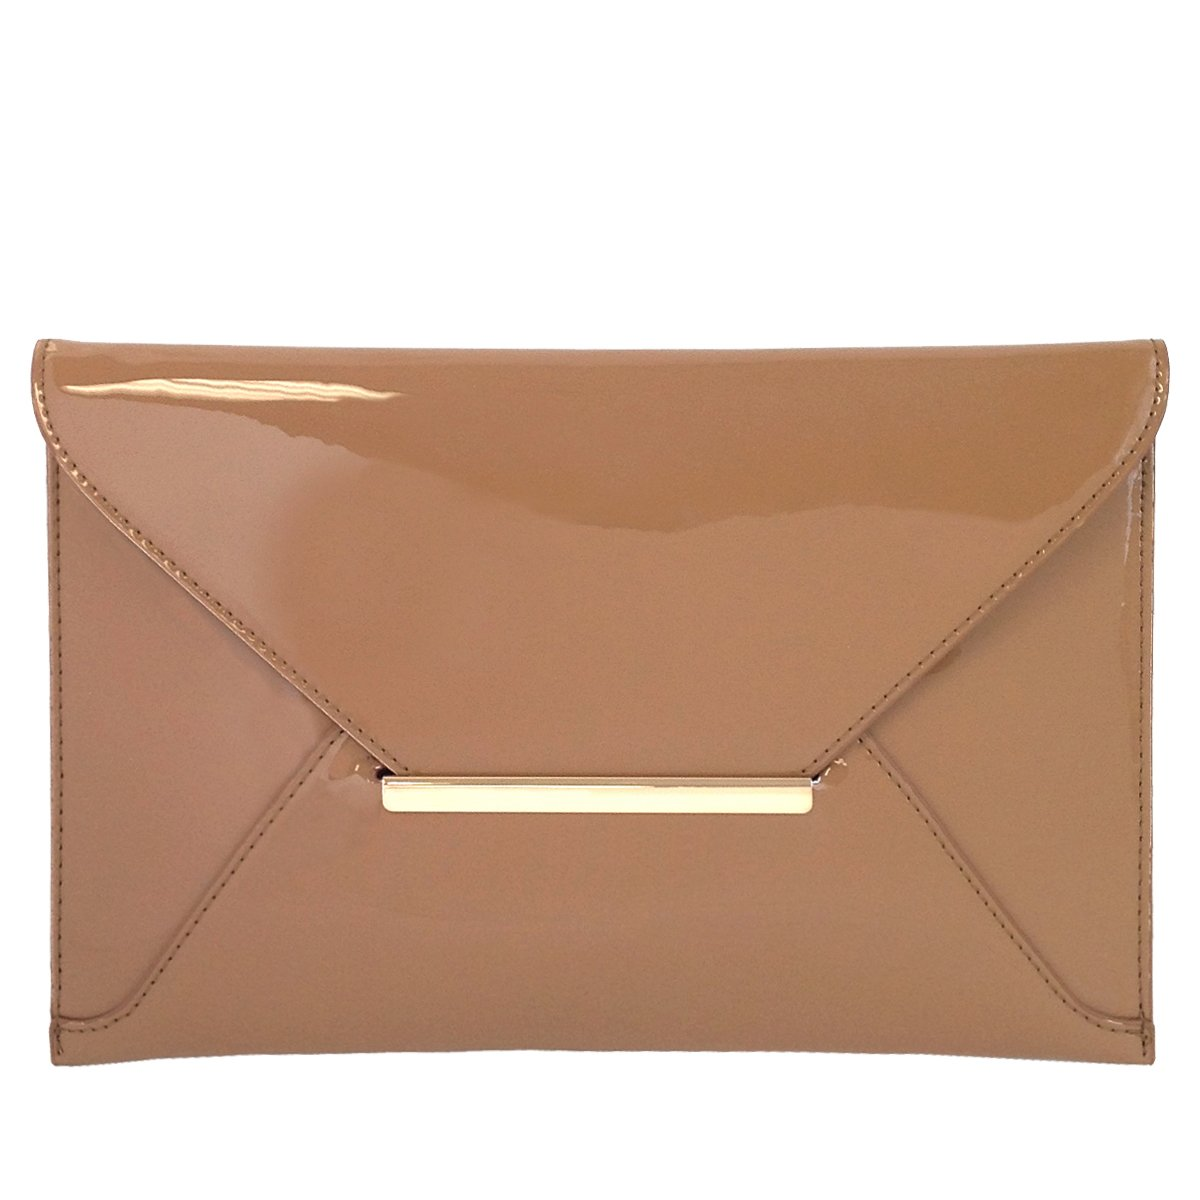 Faux Patent Leather Envelope Candy Clutch Bag, Taupe